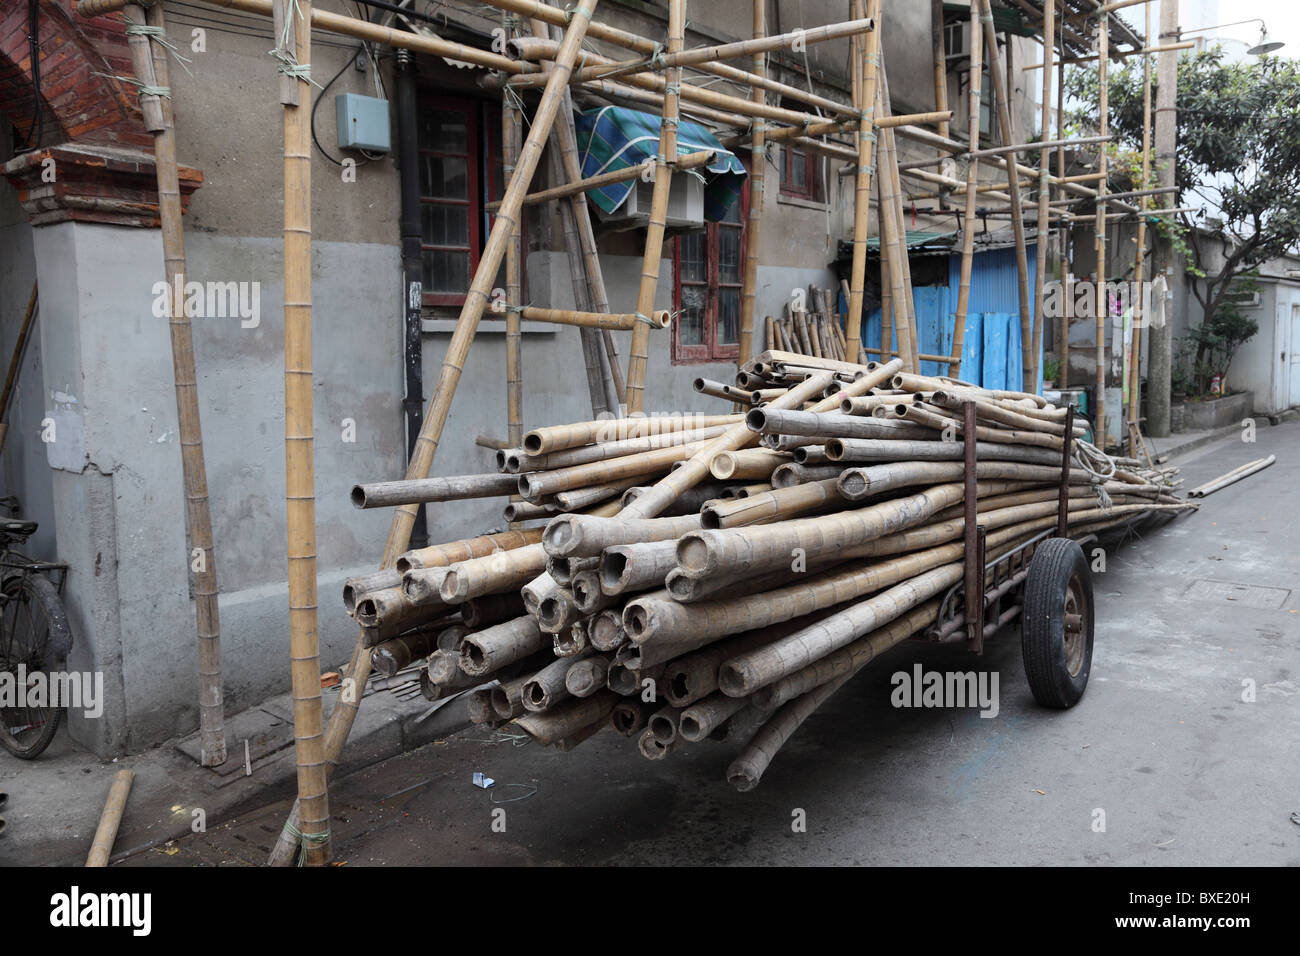 Bamboo scaffolding in China - Stock Image